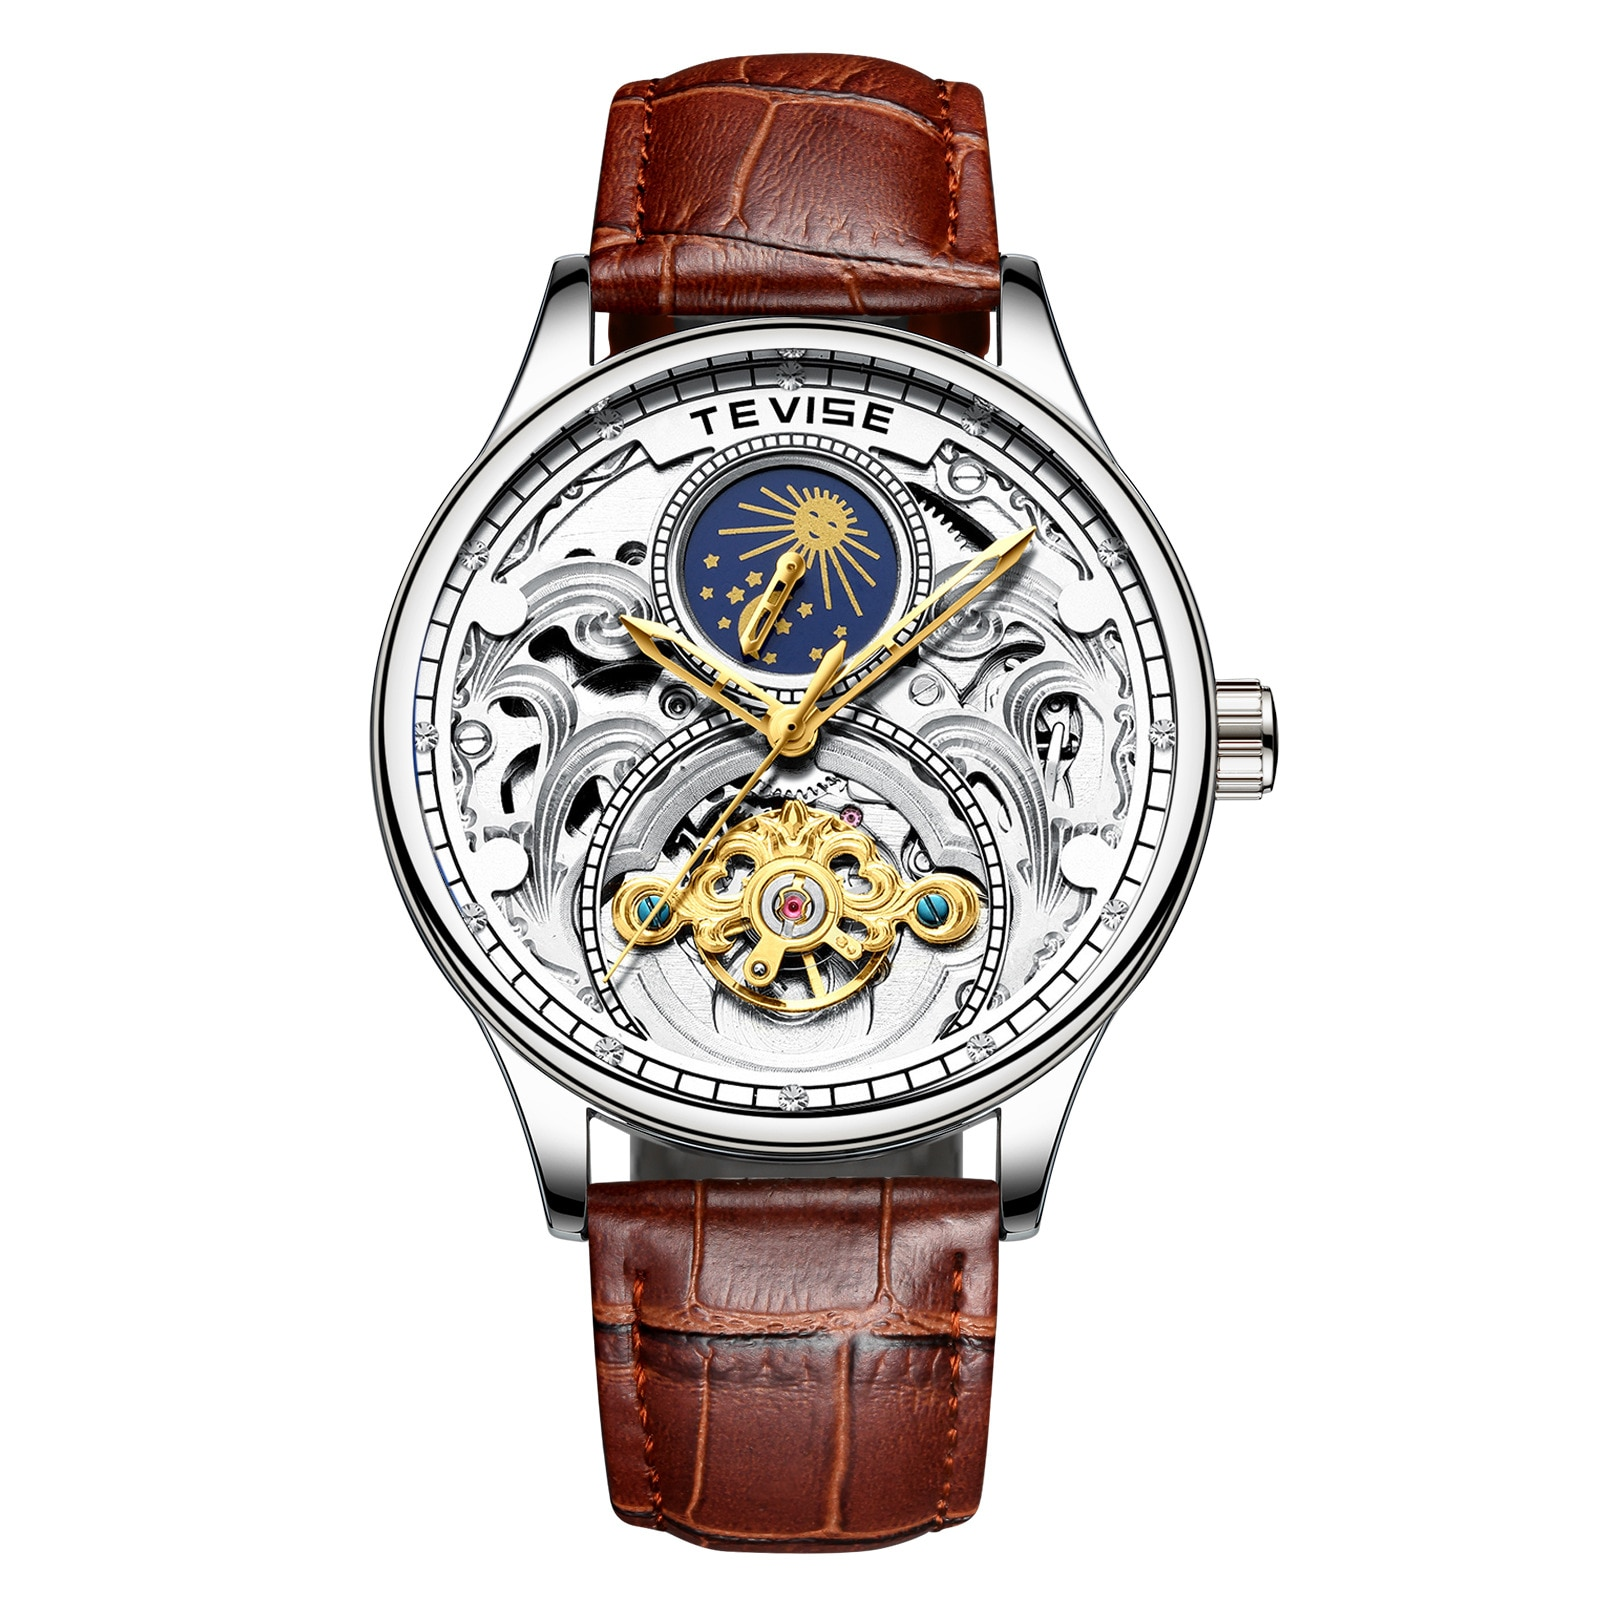 Mens Skeleton Mechanical Watches Leather Wristwatch 30m Water Resistance Top Brand Luxury Automatic Watch For Men enlarge